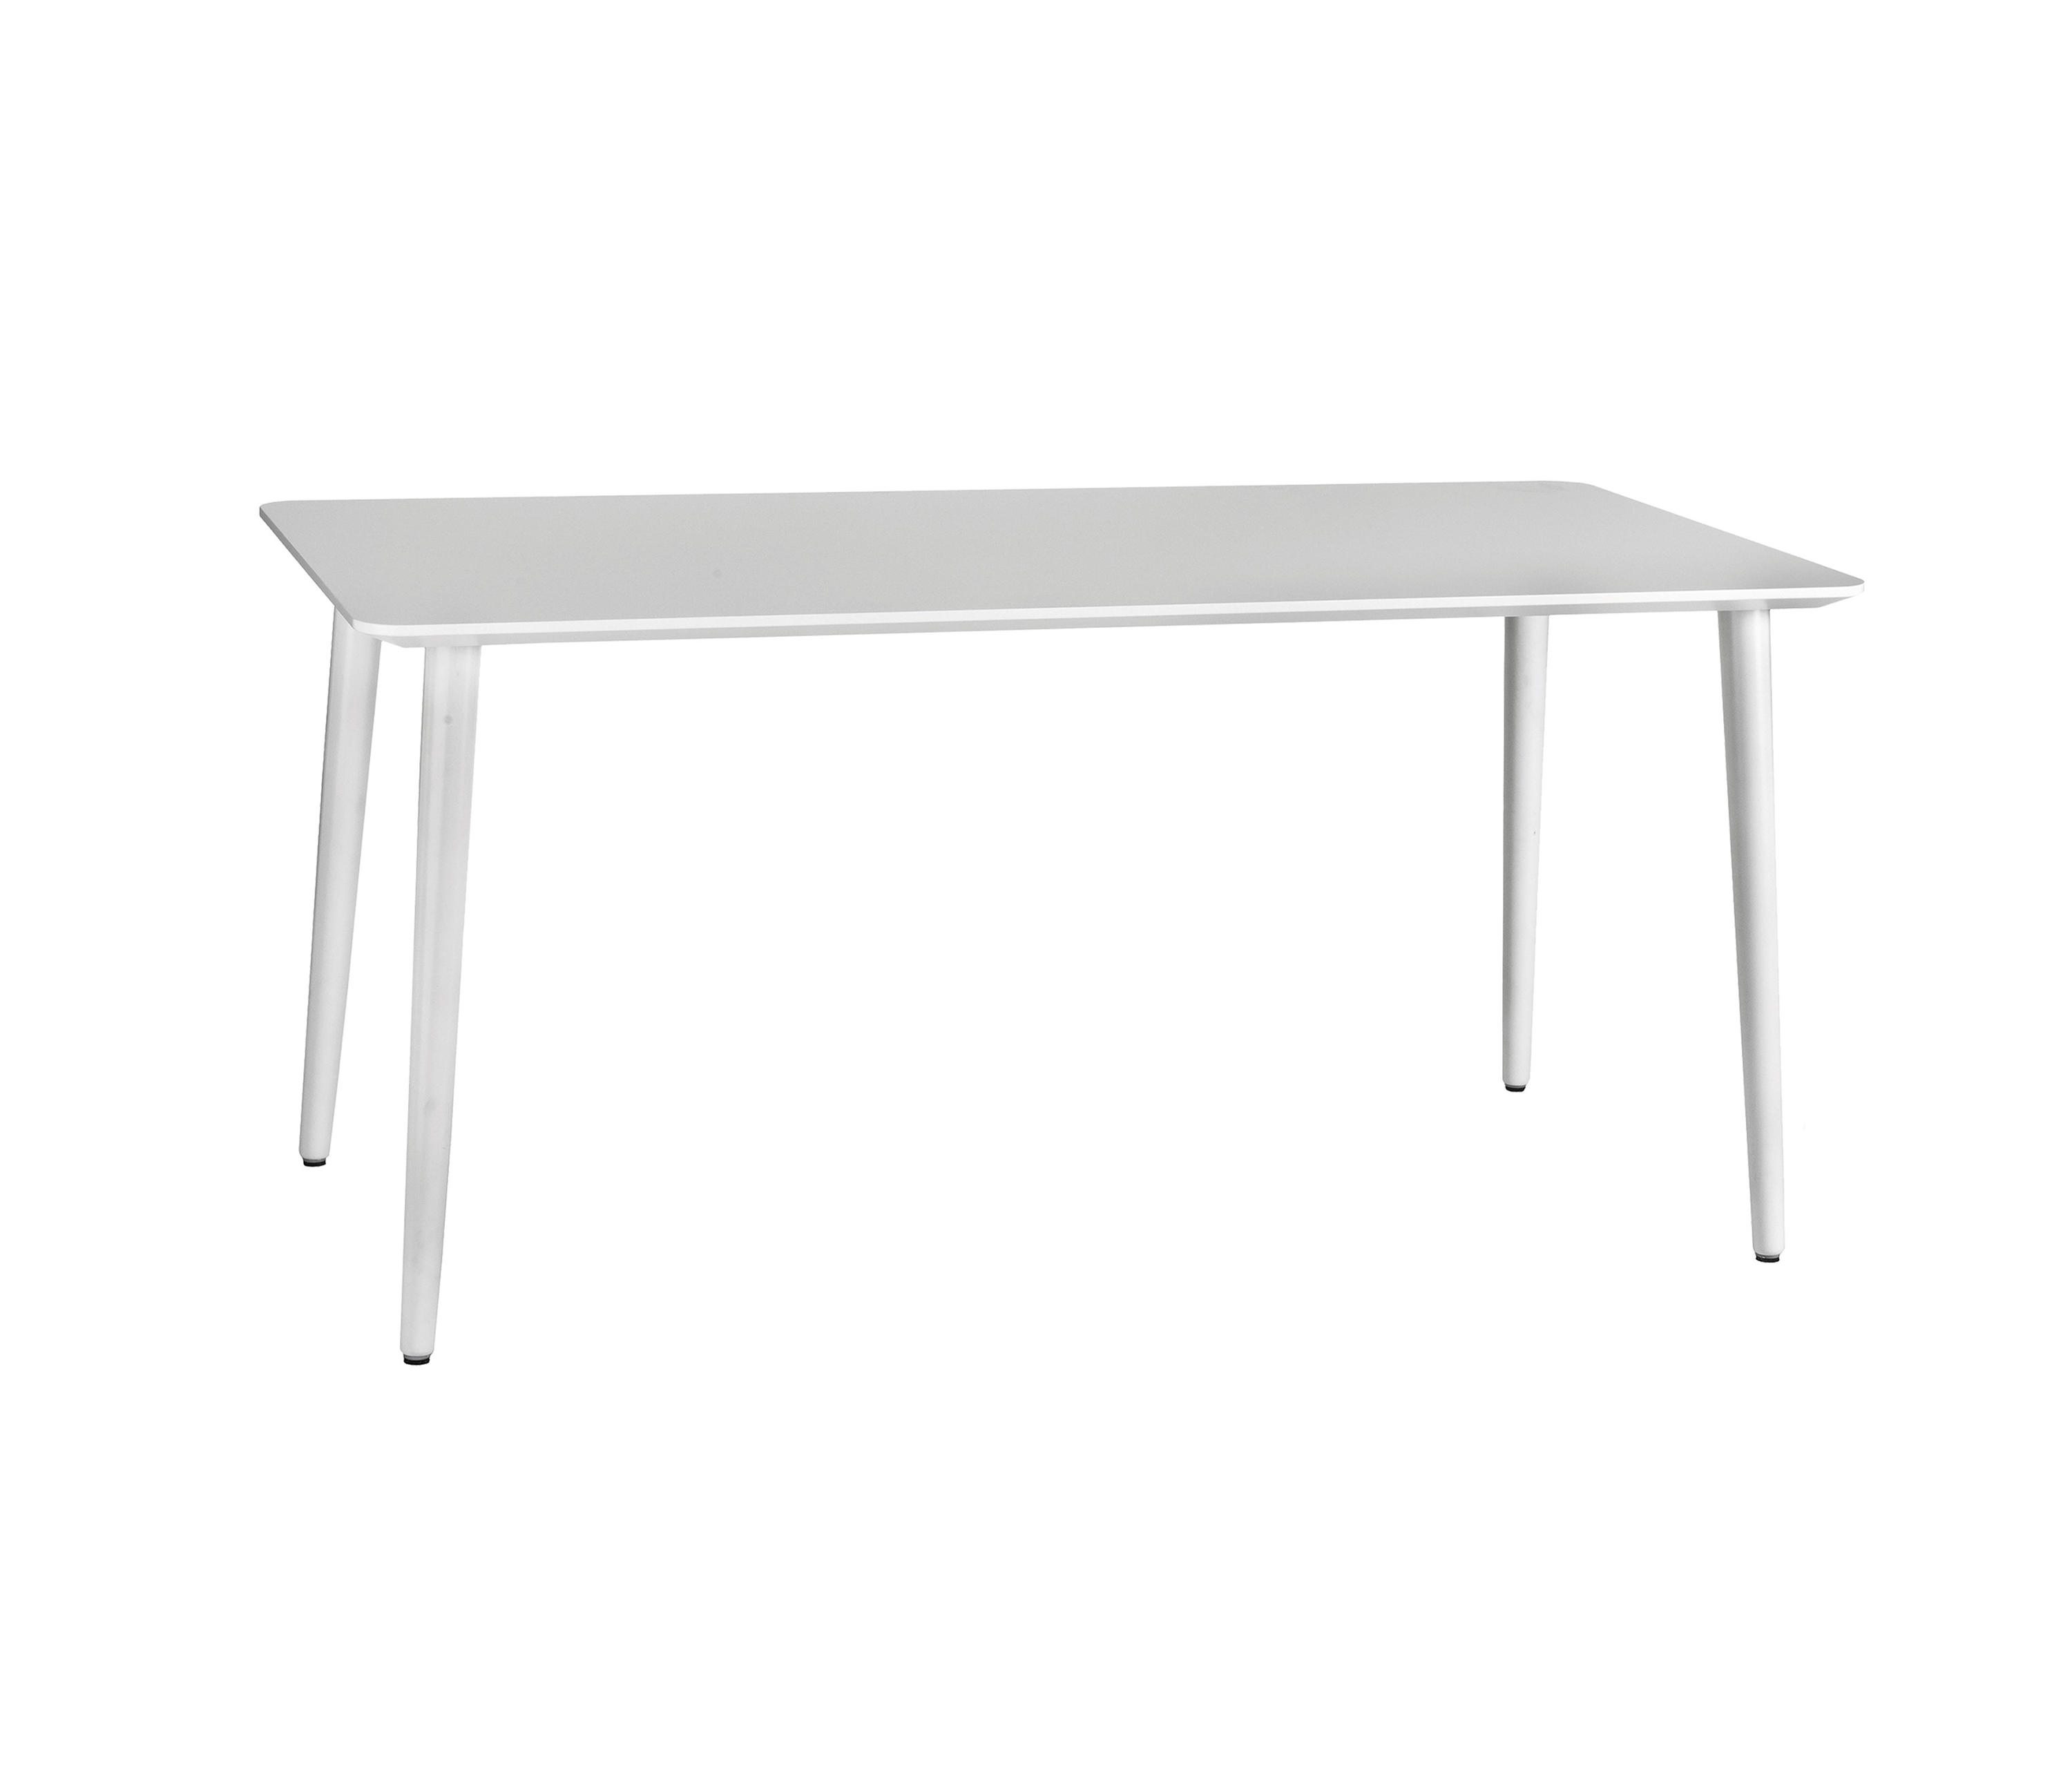 Cb Chelsea Outdoor Dining Table Dining Tables - Cb2 glass top dining table